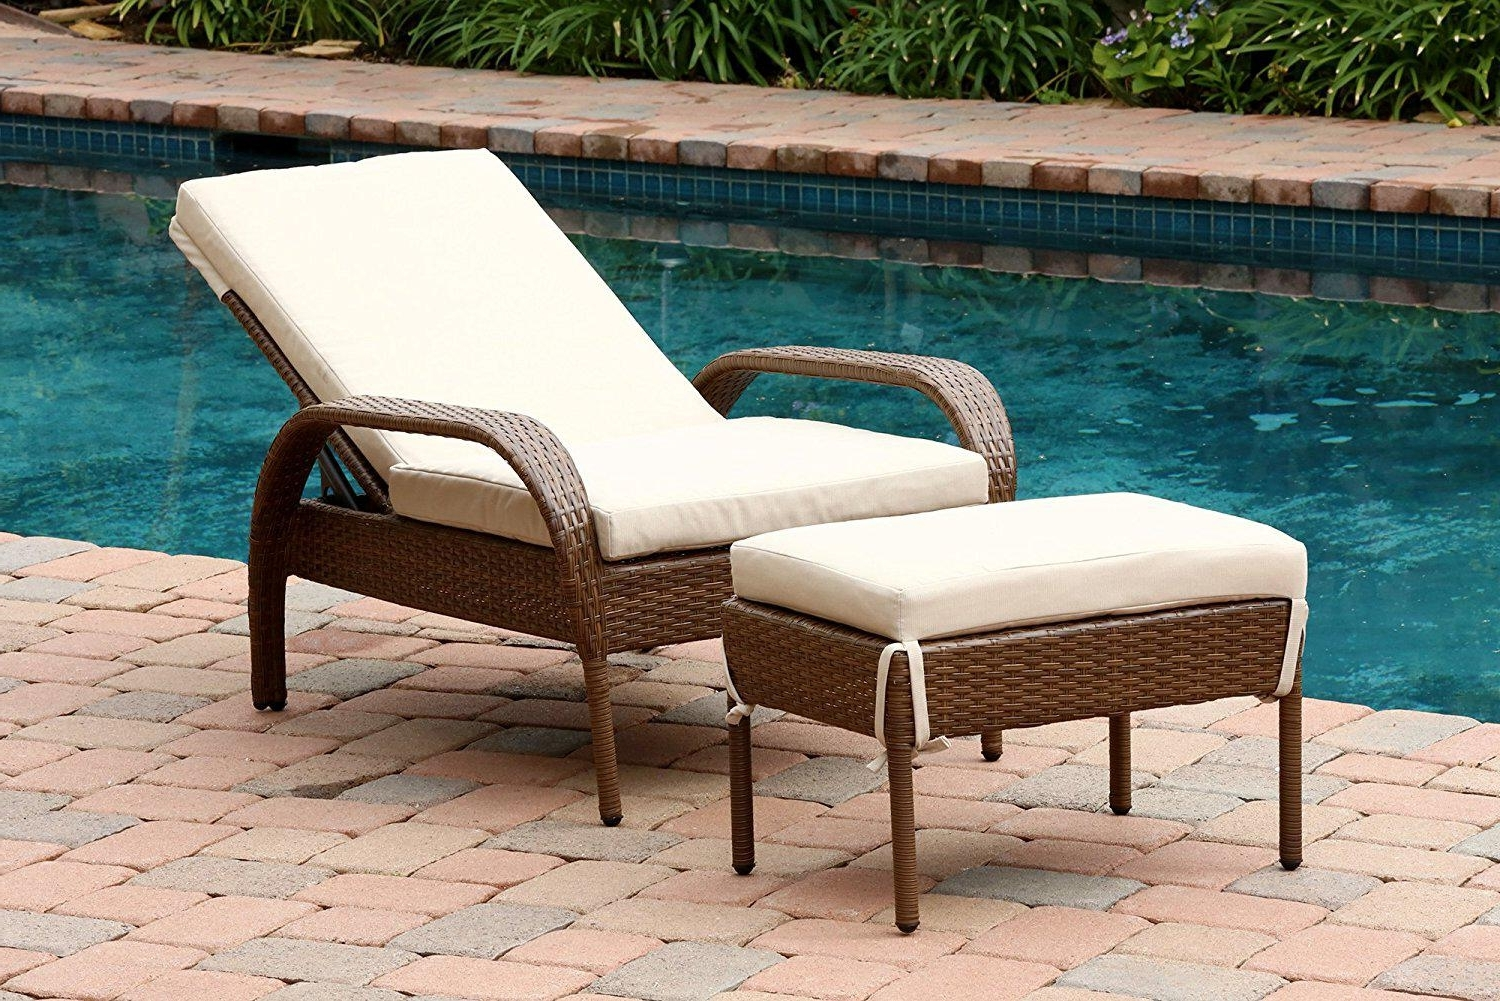 Web Chaise Lounge Lawn Chairs Pertaining To Famous Outdoor : Patio Furniture Lounge Lounge Chairs For Bedroom Plastic (View 11 of 15)